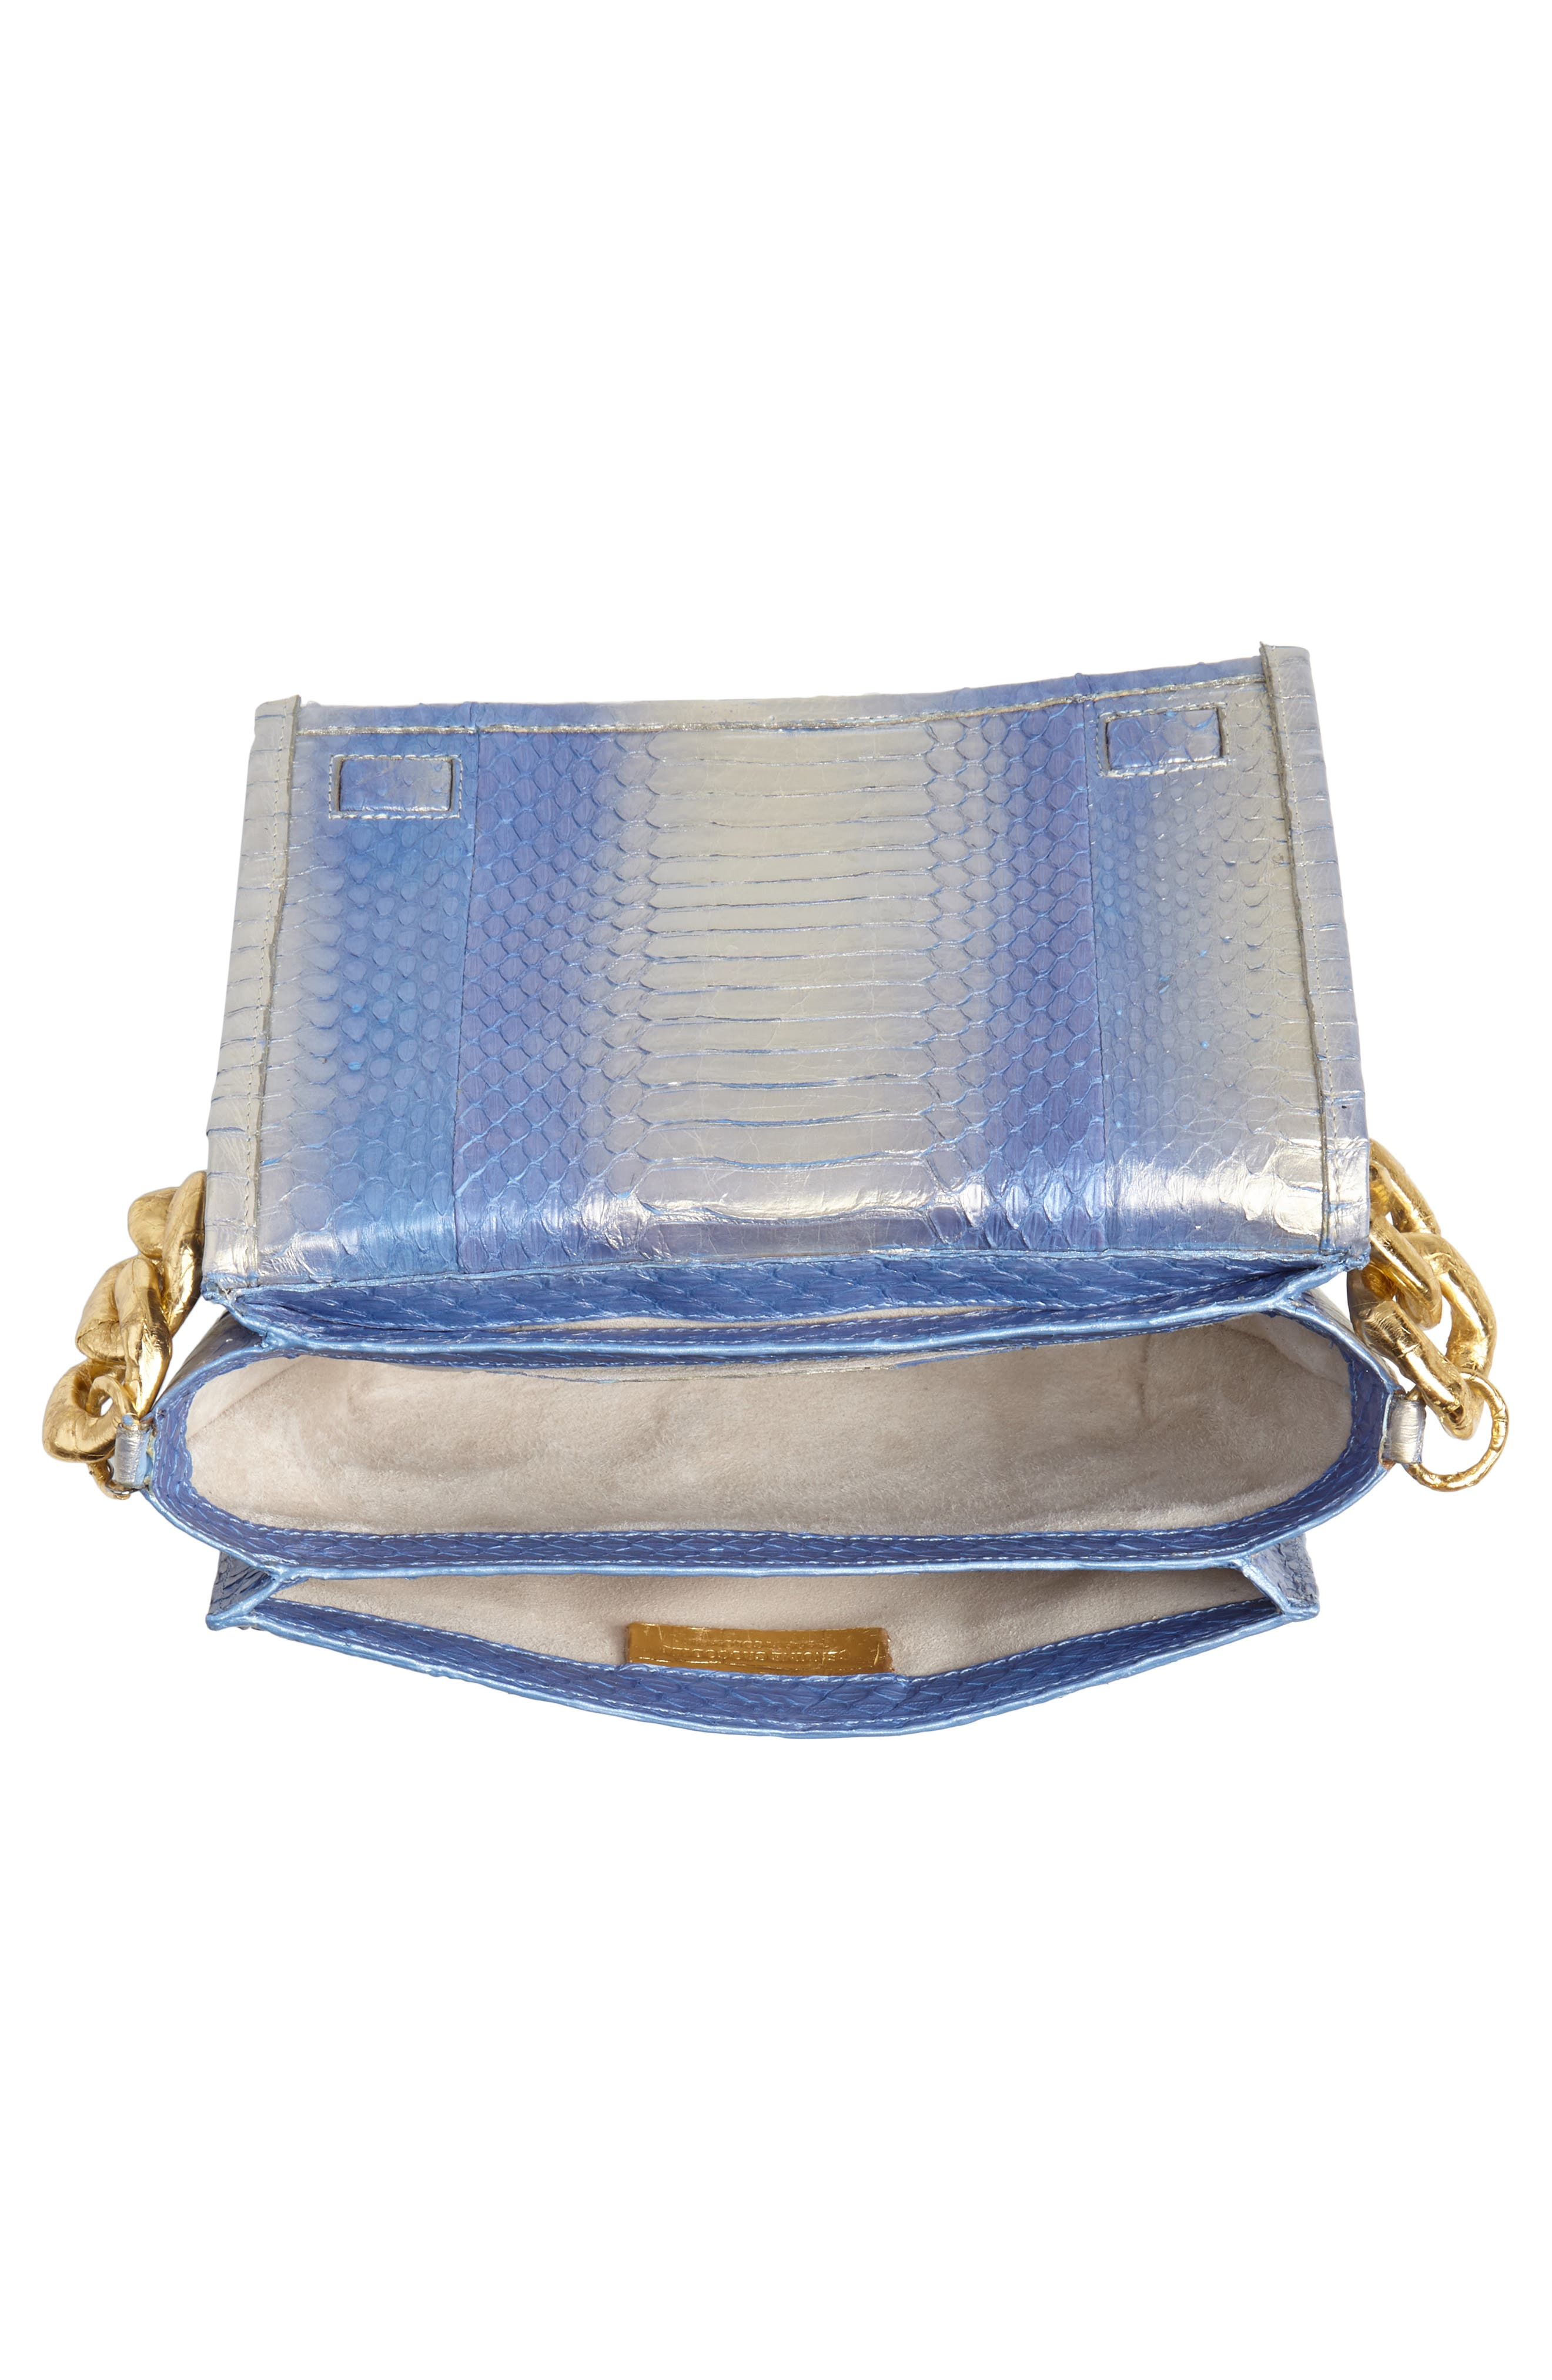 NANCY GONZALEZ, Small Carrie Genuine Crocodile Clutch, Alternate thumbnail 5, color, SILVER/ BLUE DEGRADE/ GOLD